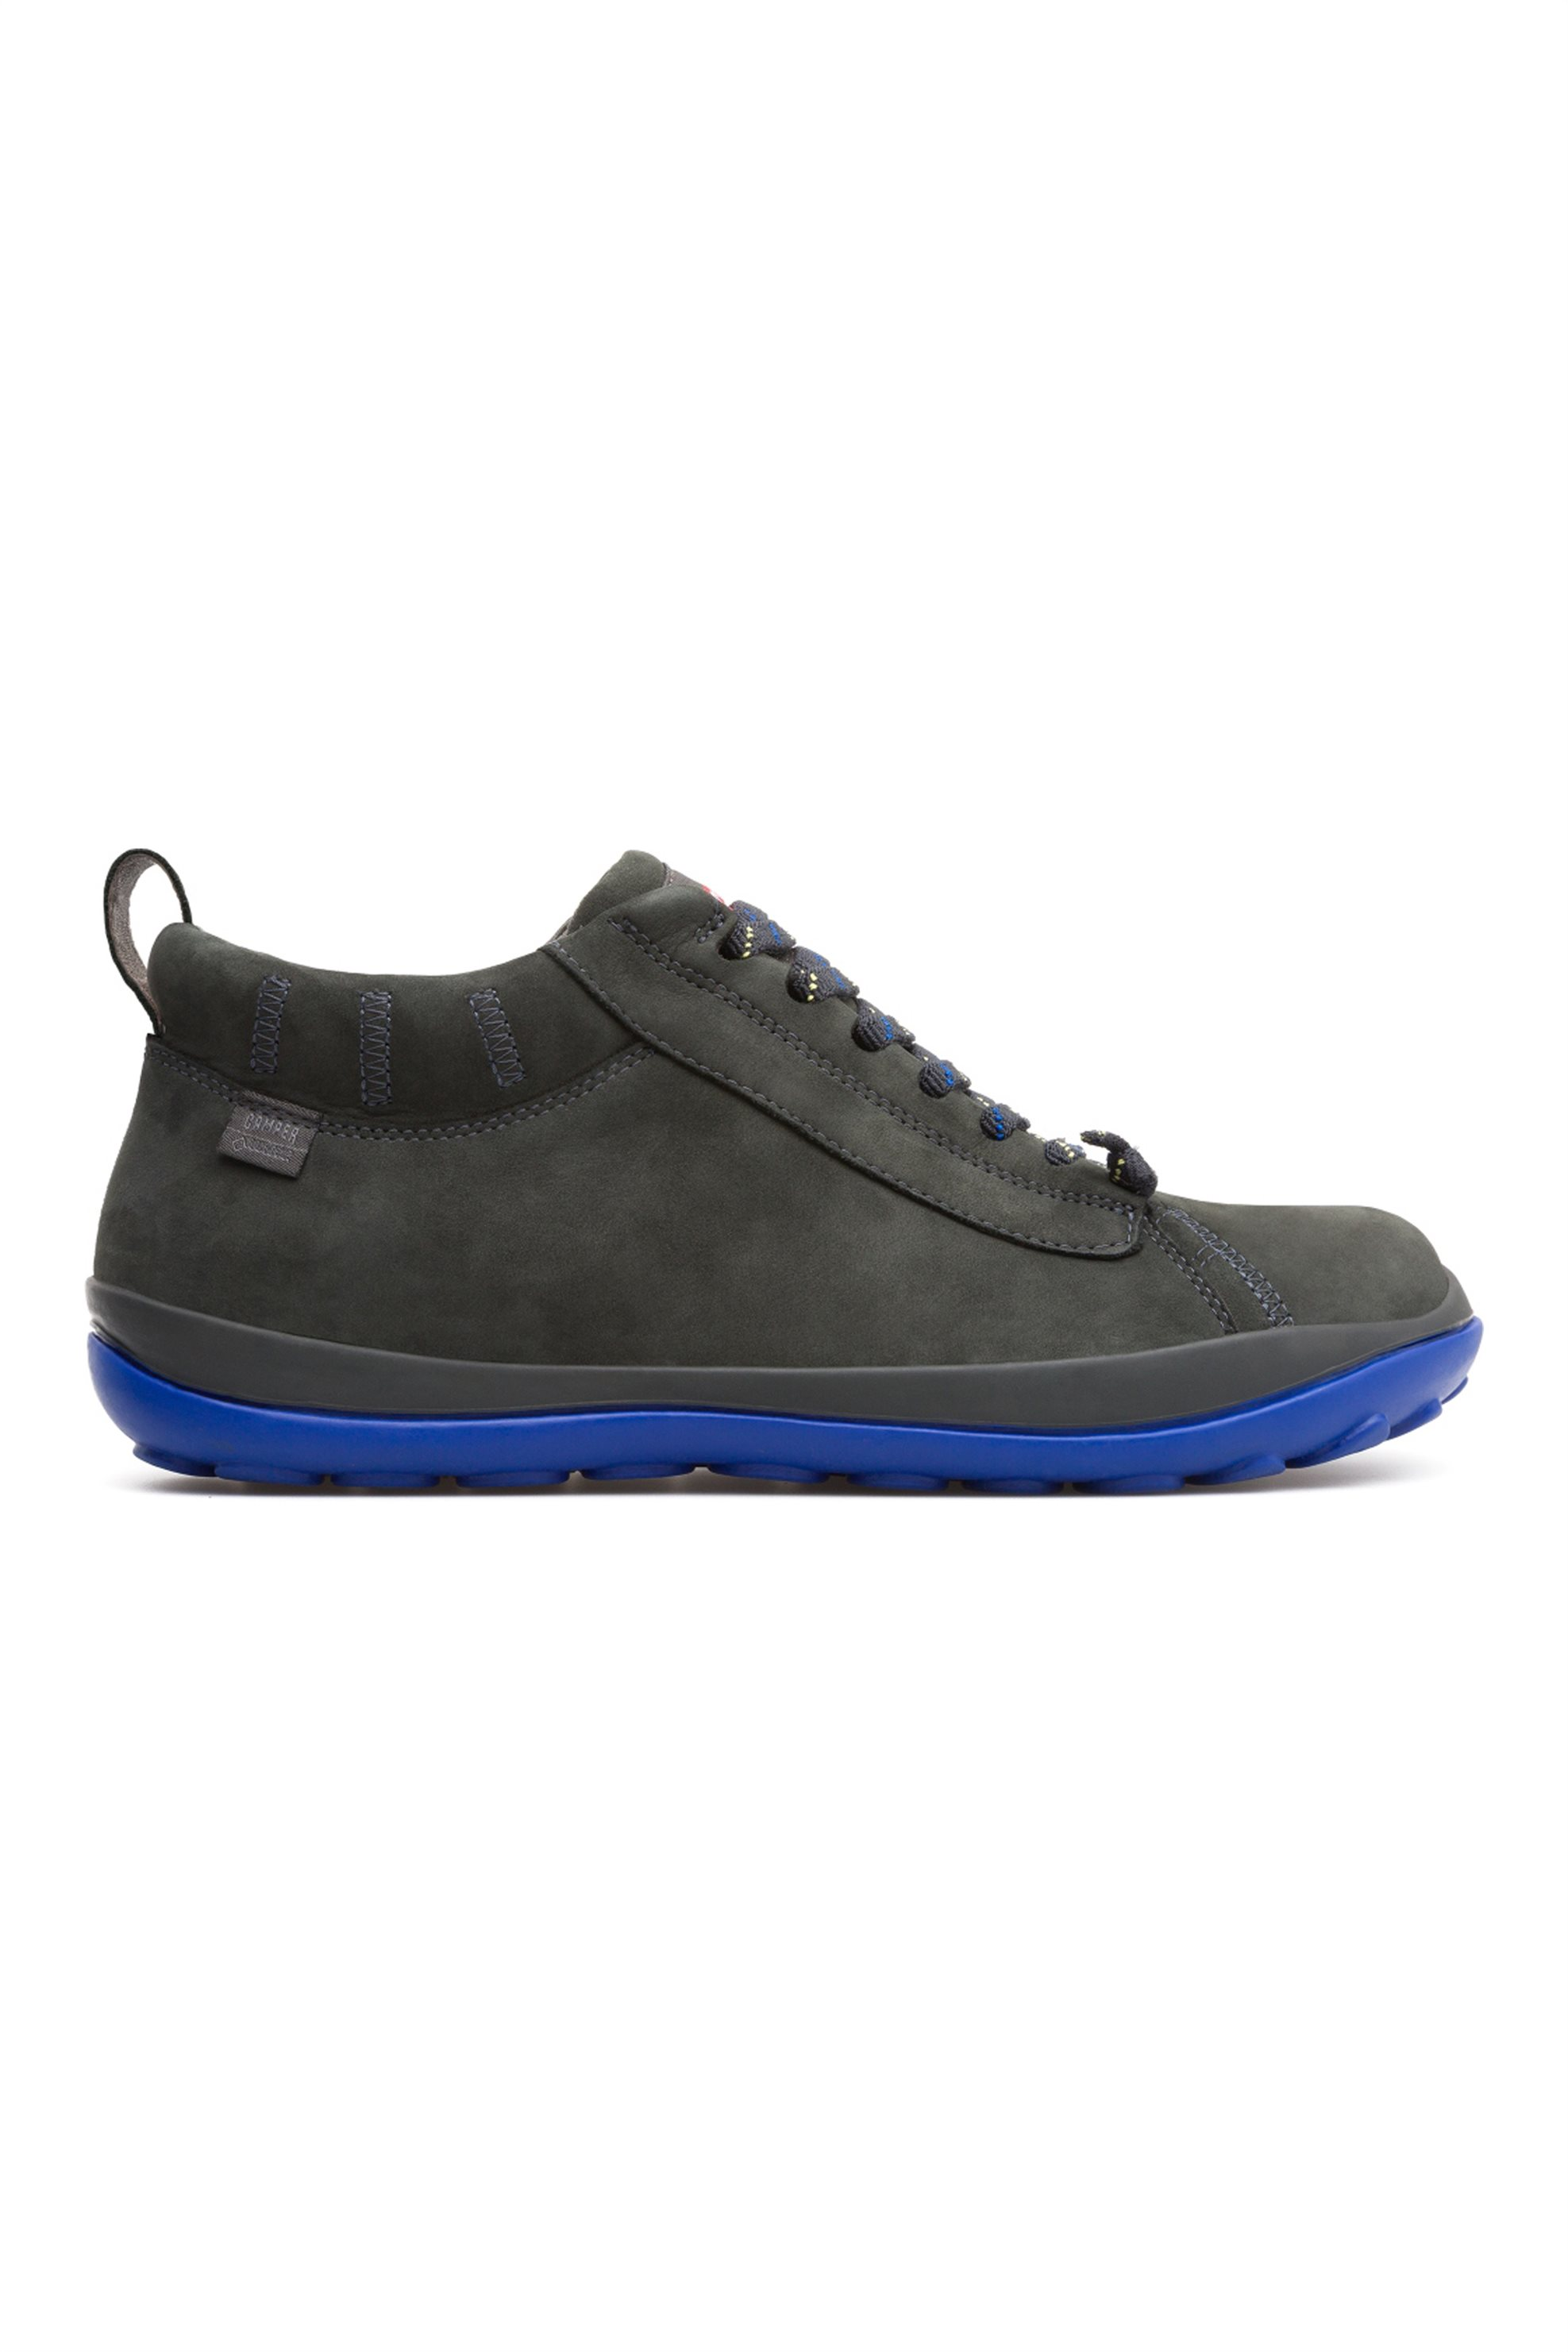 Camper ανδρικά παπούτσια σουέτ Gore-Tex® Peu Pista - 36544-066 - Ανθρακί ανδρασ   παπουτσια   trainers   sneakers